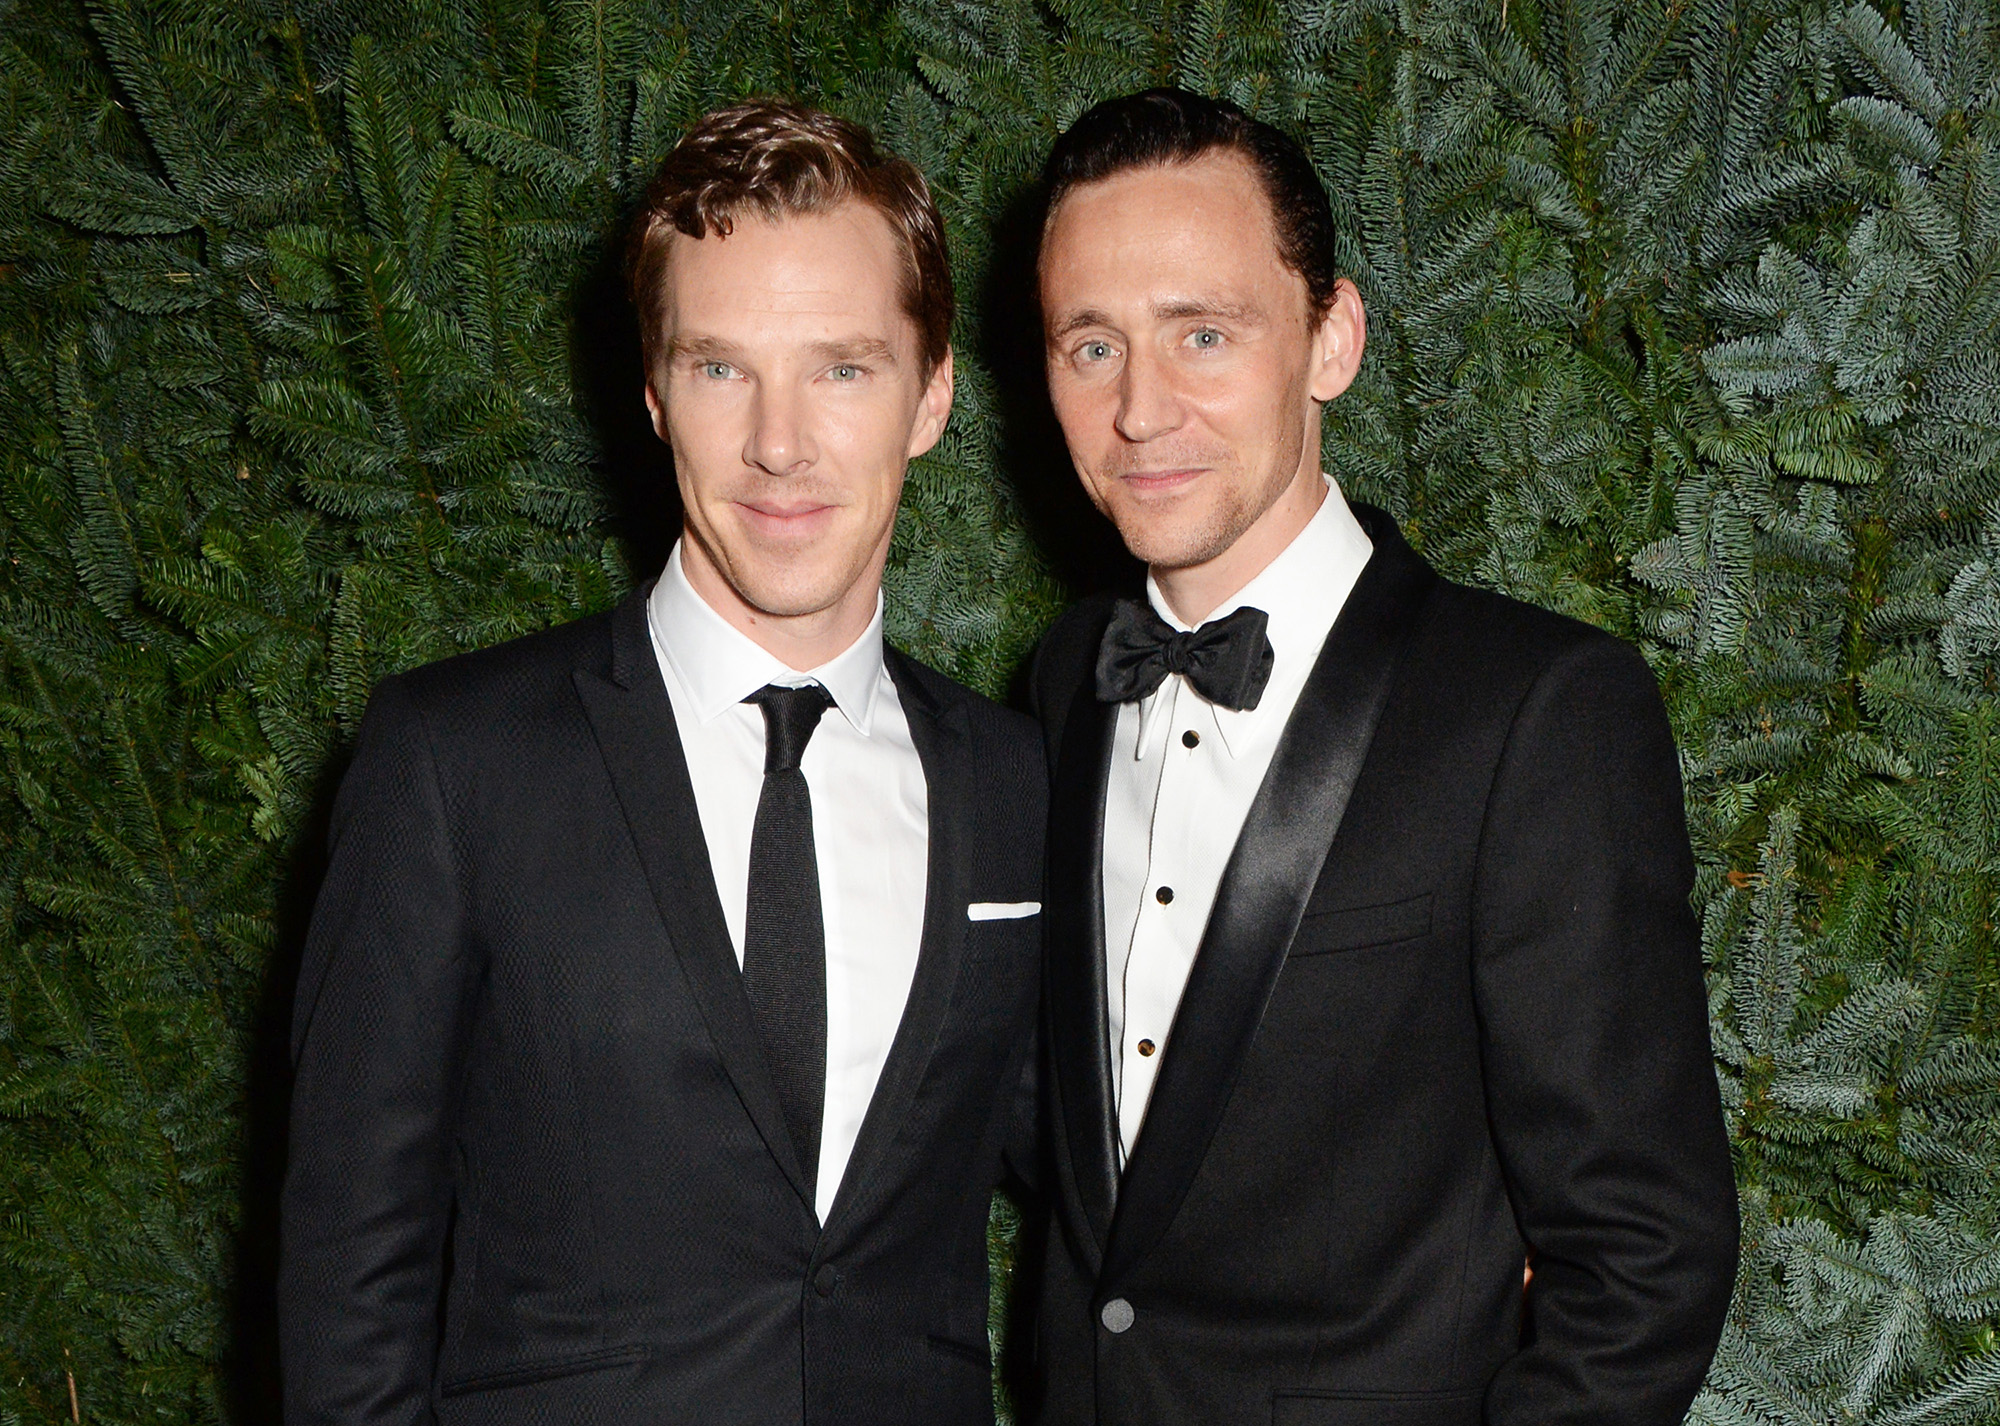 Benedict Cumberbatch and Tom Hiddleston Interview Q&A | Time